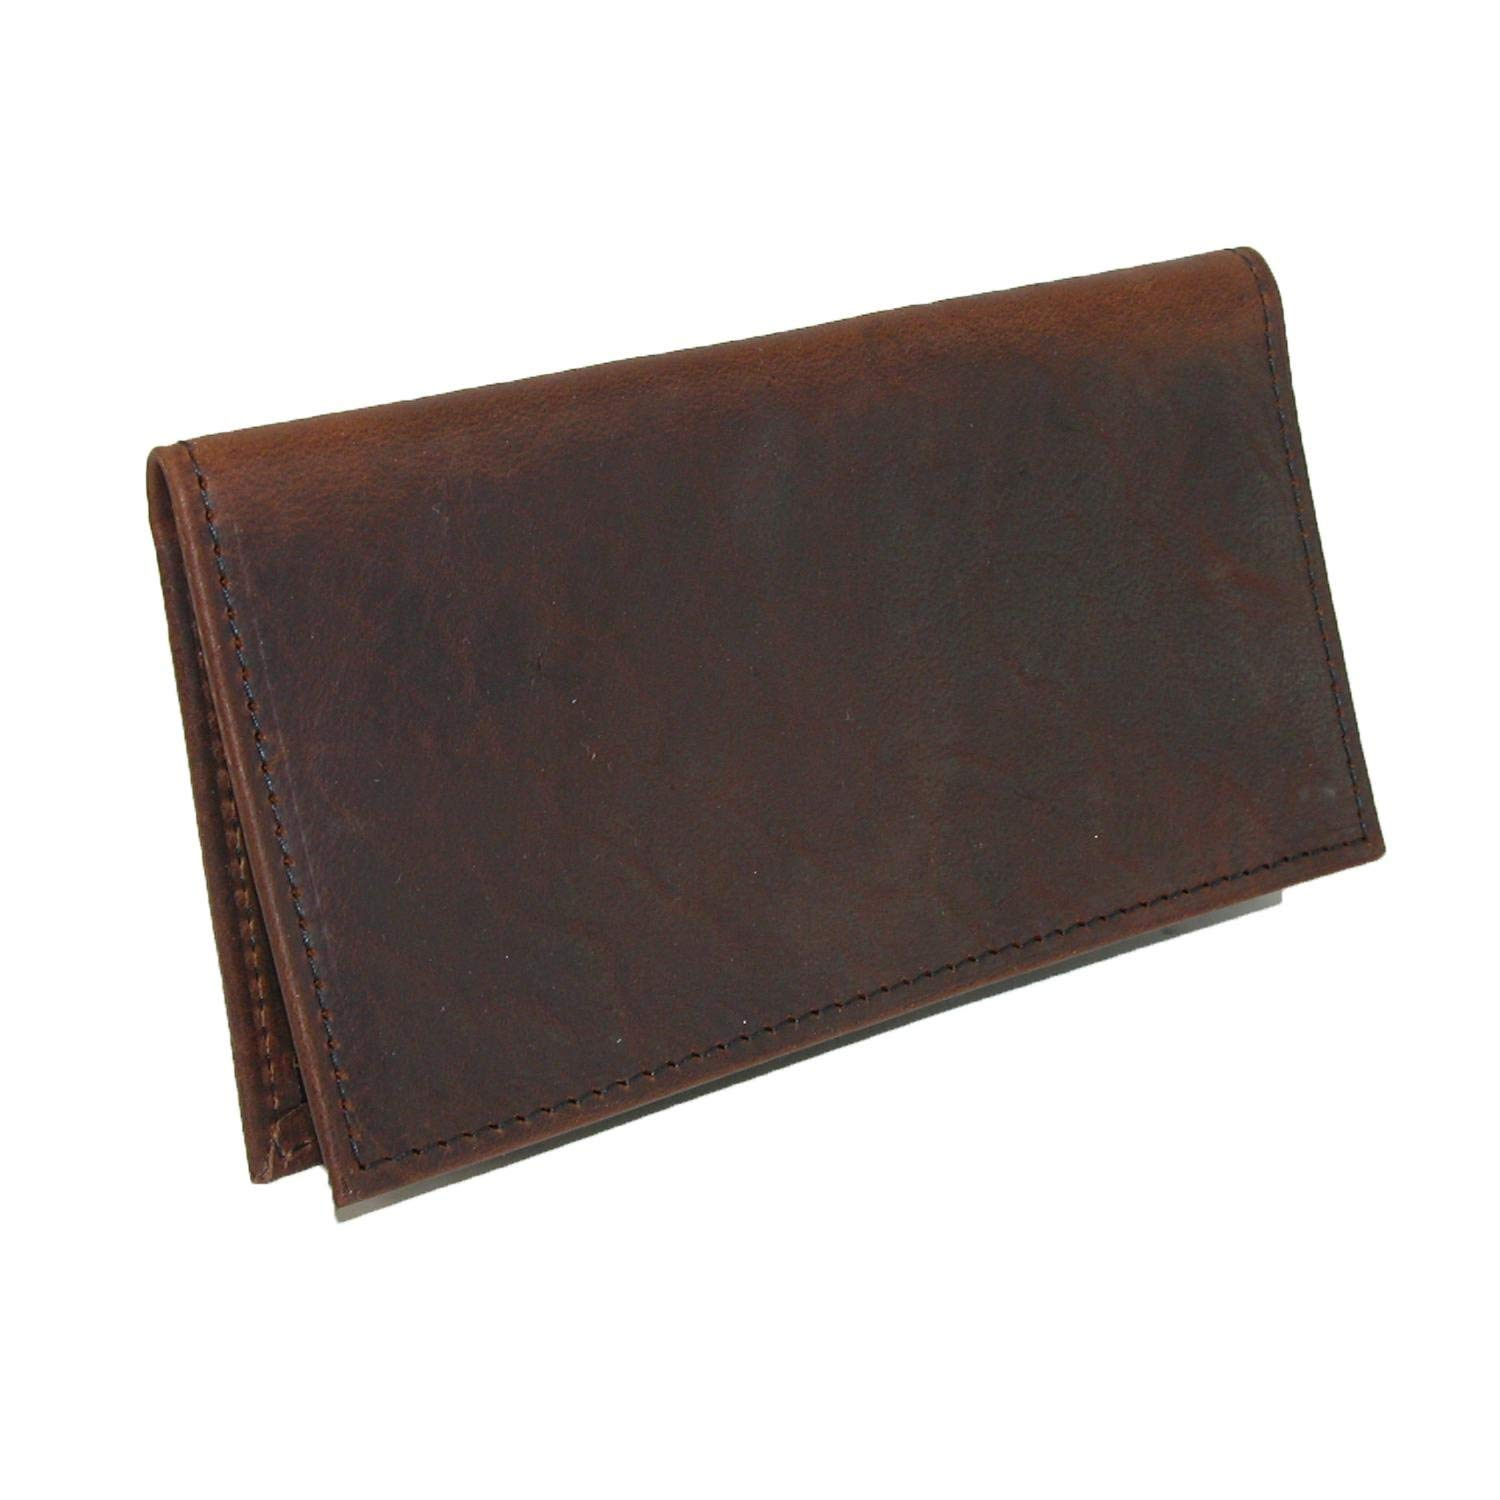 Boston Leather Unisex Textured Bison Leather Checkbook Cover, Check Book Protection Dark Pecan by Boston Leather